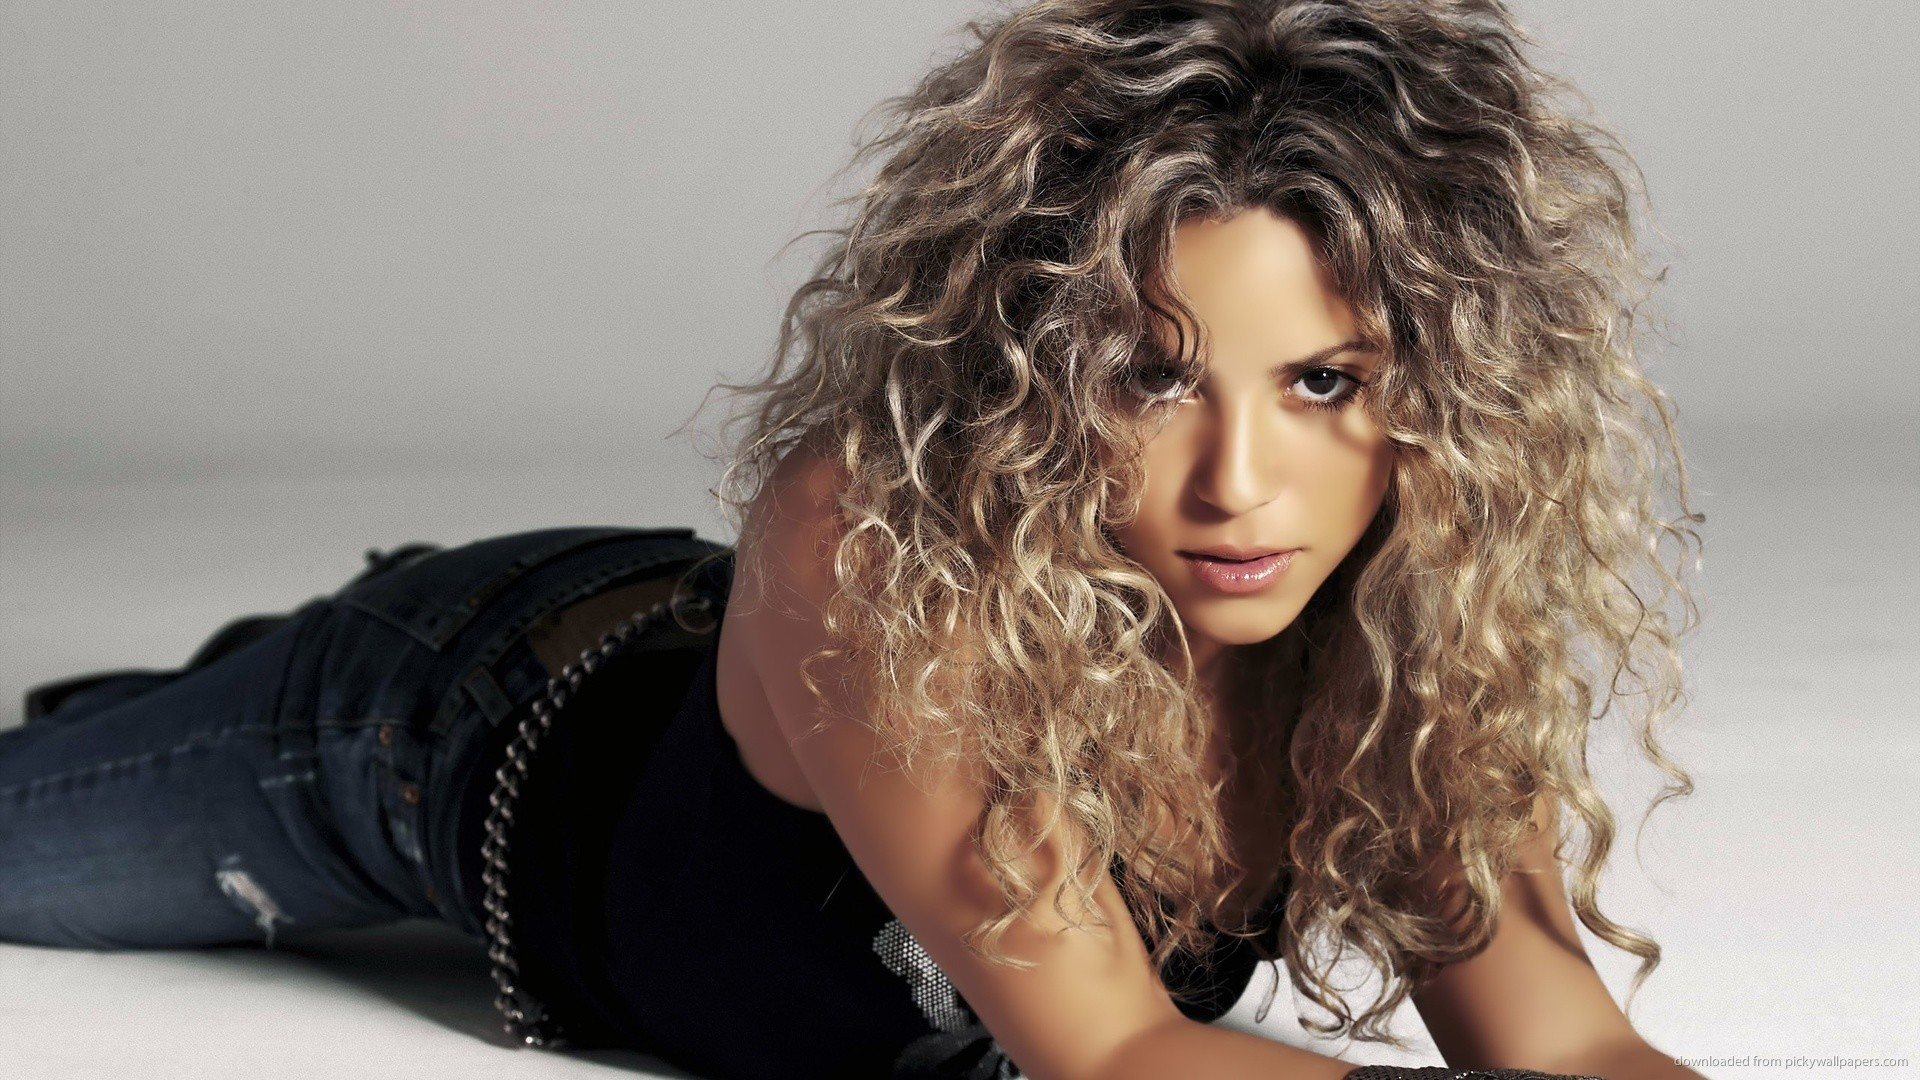 Curly Shakira picture